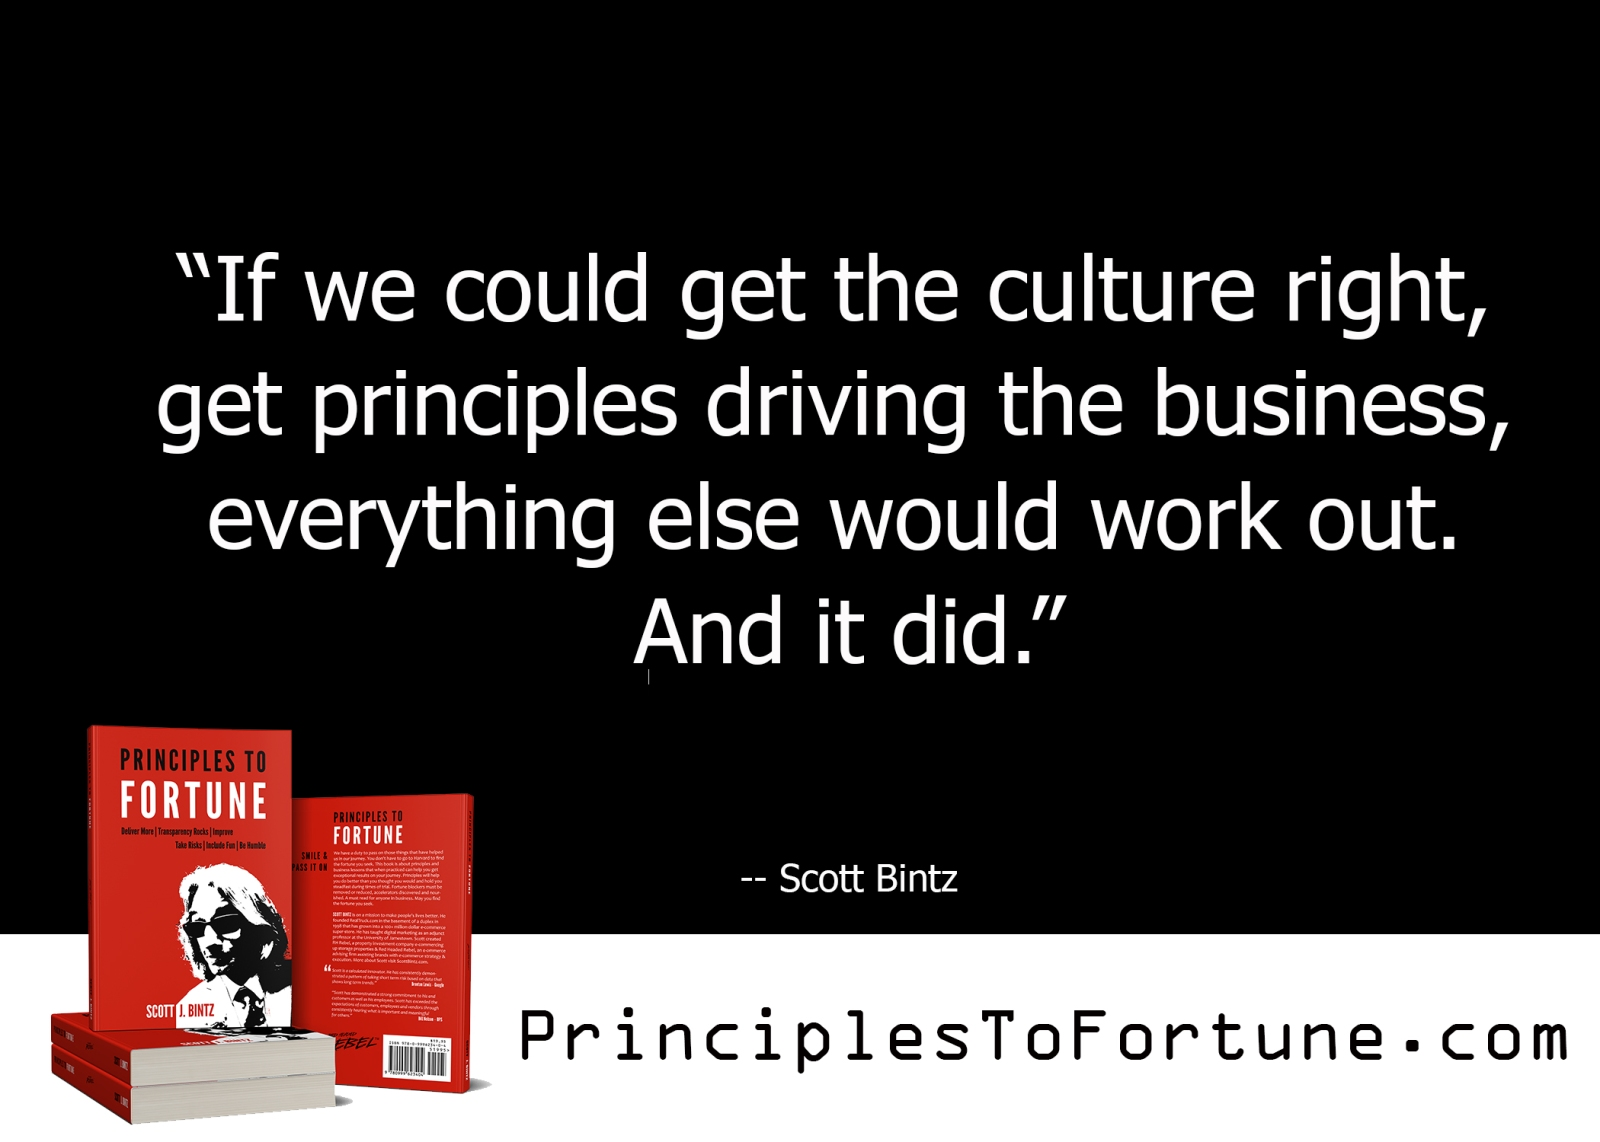 """""""If we could get the culture right, get principles driving the business, everything else would work out. And it did."""" Quote from the Book, Principles To Fortune by Scott Bintz"""